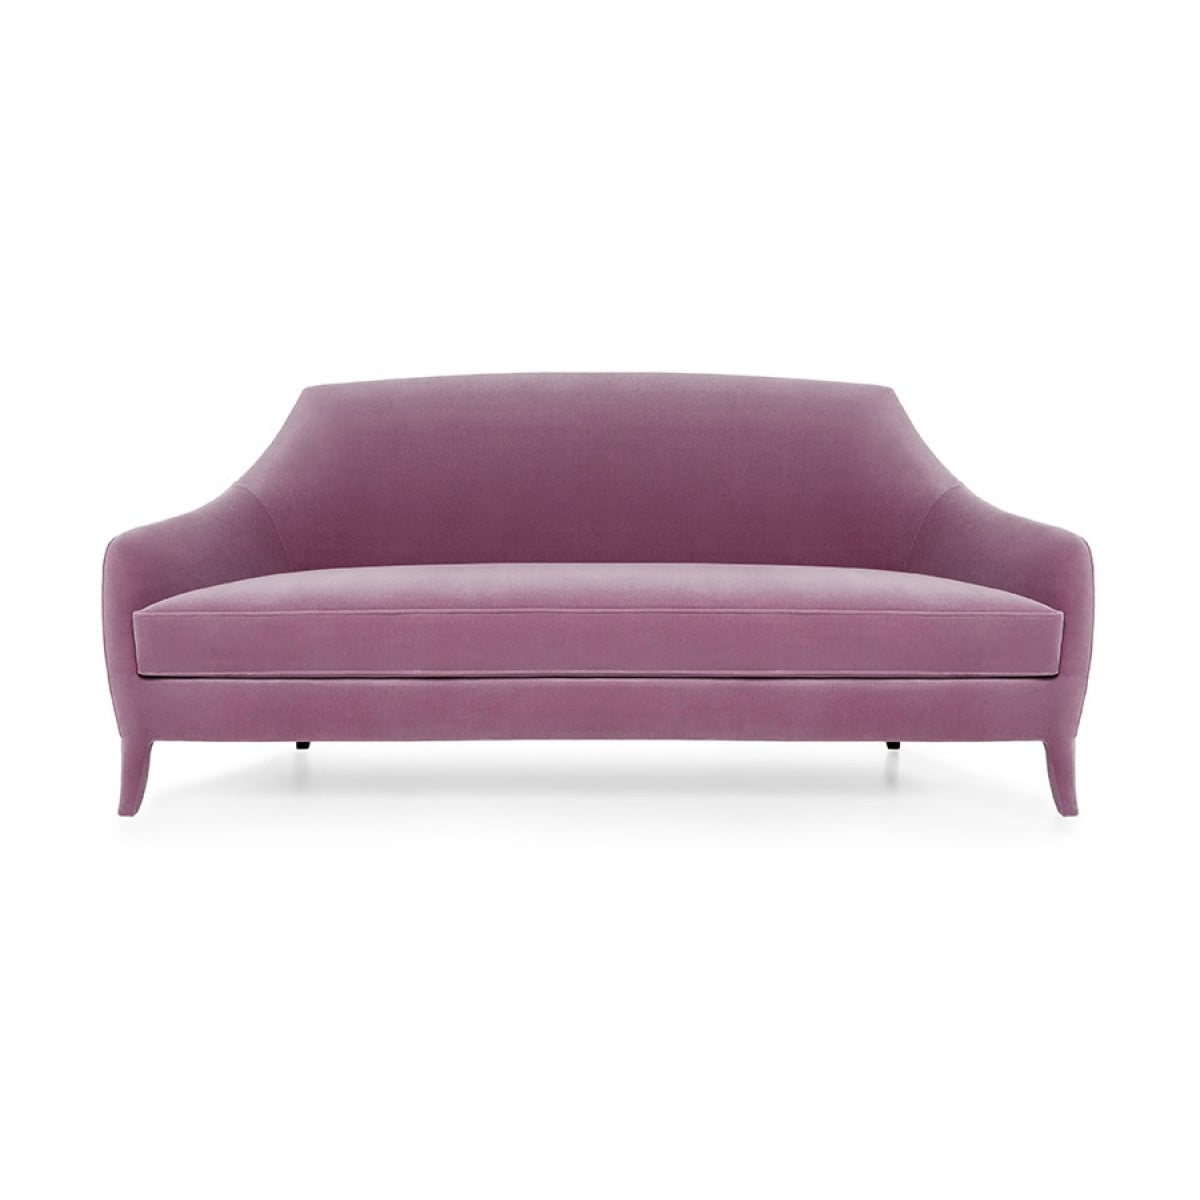 Designer sofa purple sofa margaret swanky interiors for Purple sofa